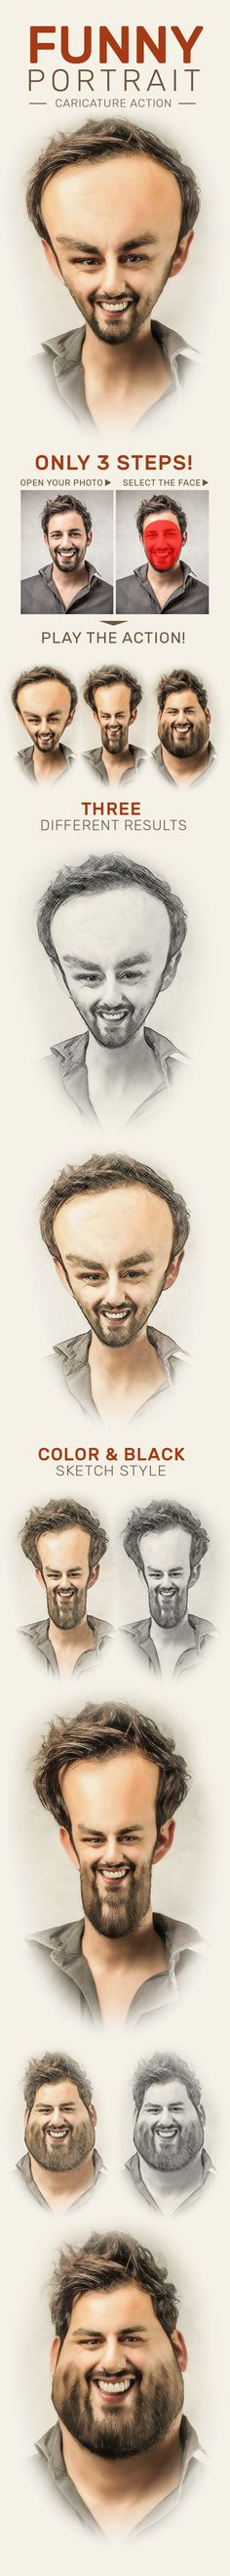 Funny Portrait Caricature Action - Photo Effects Actions